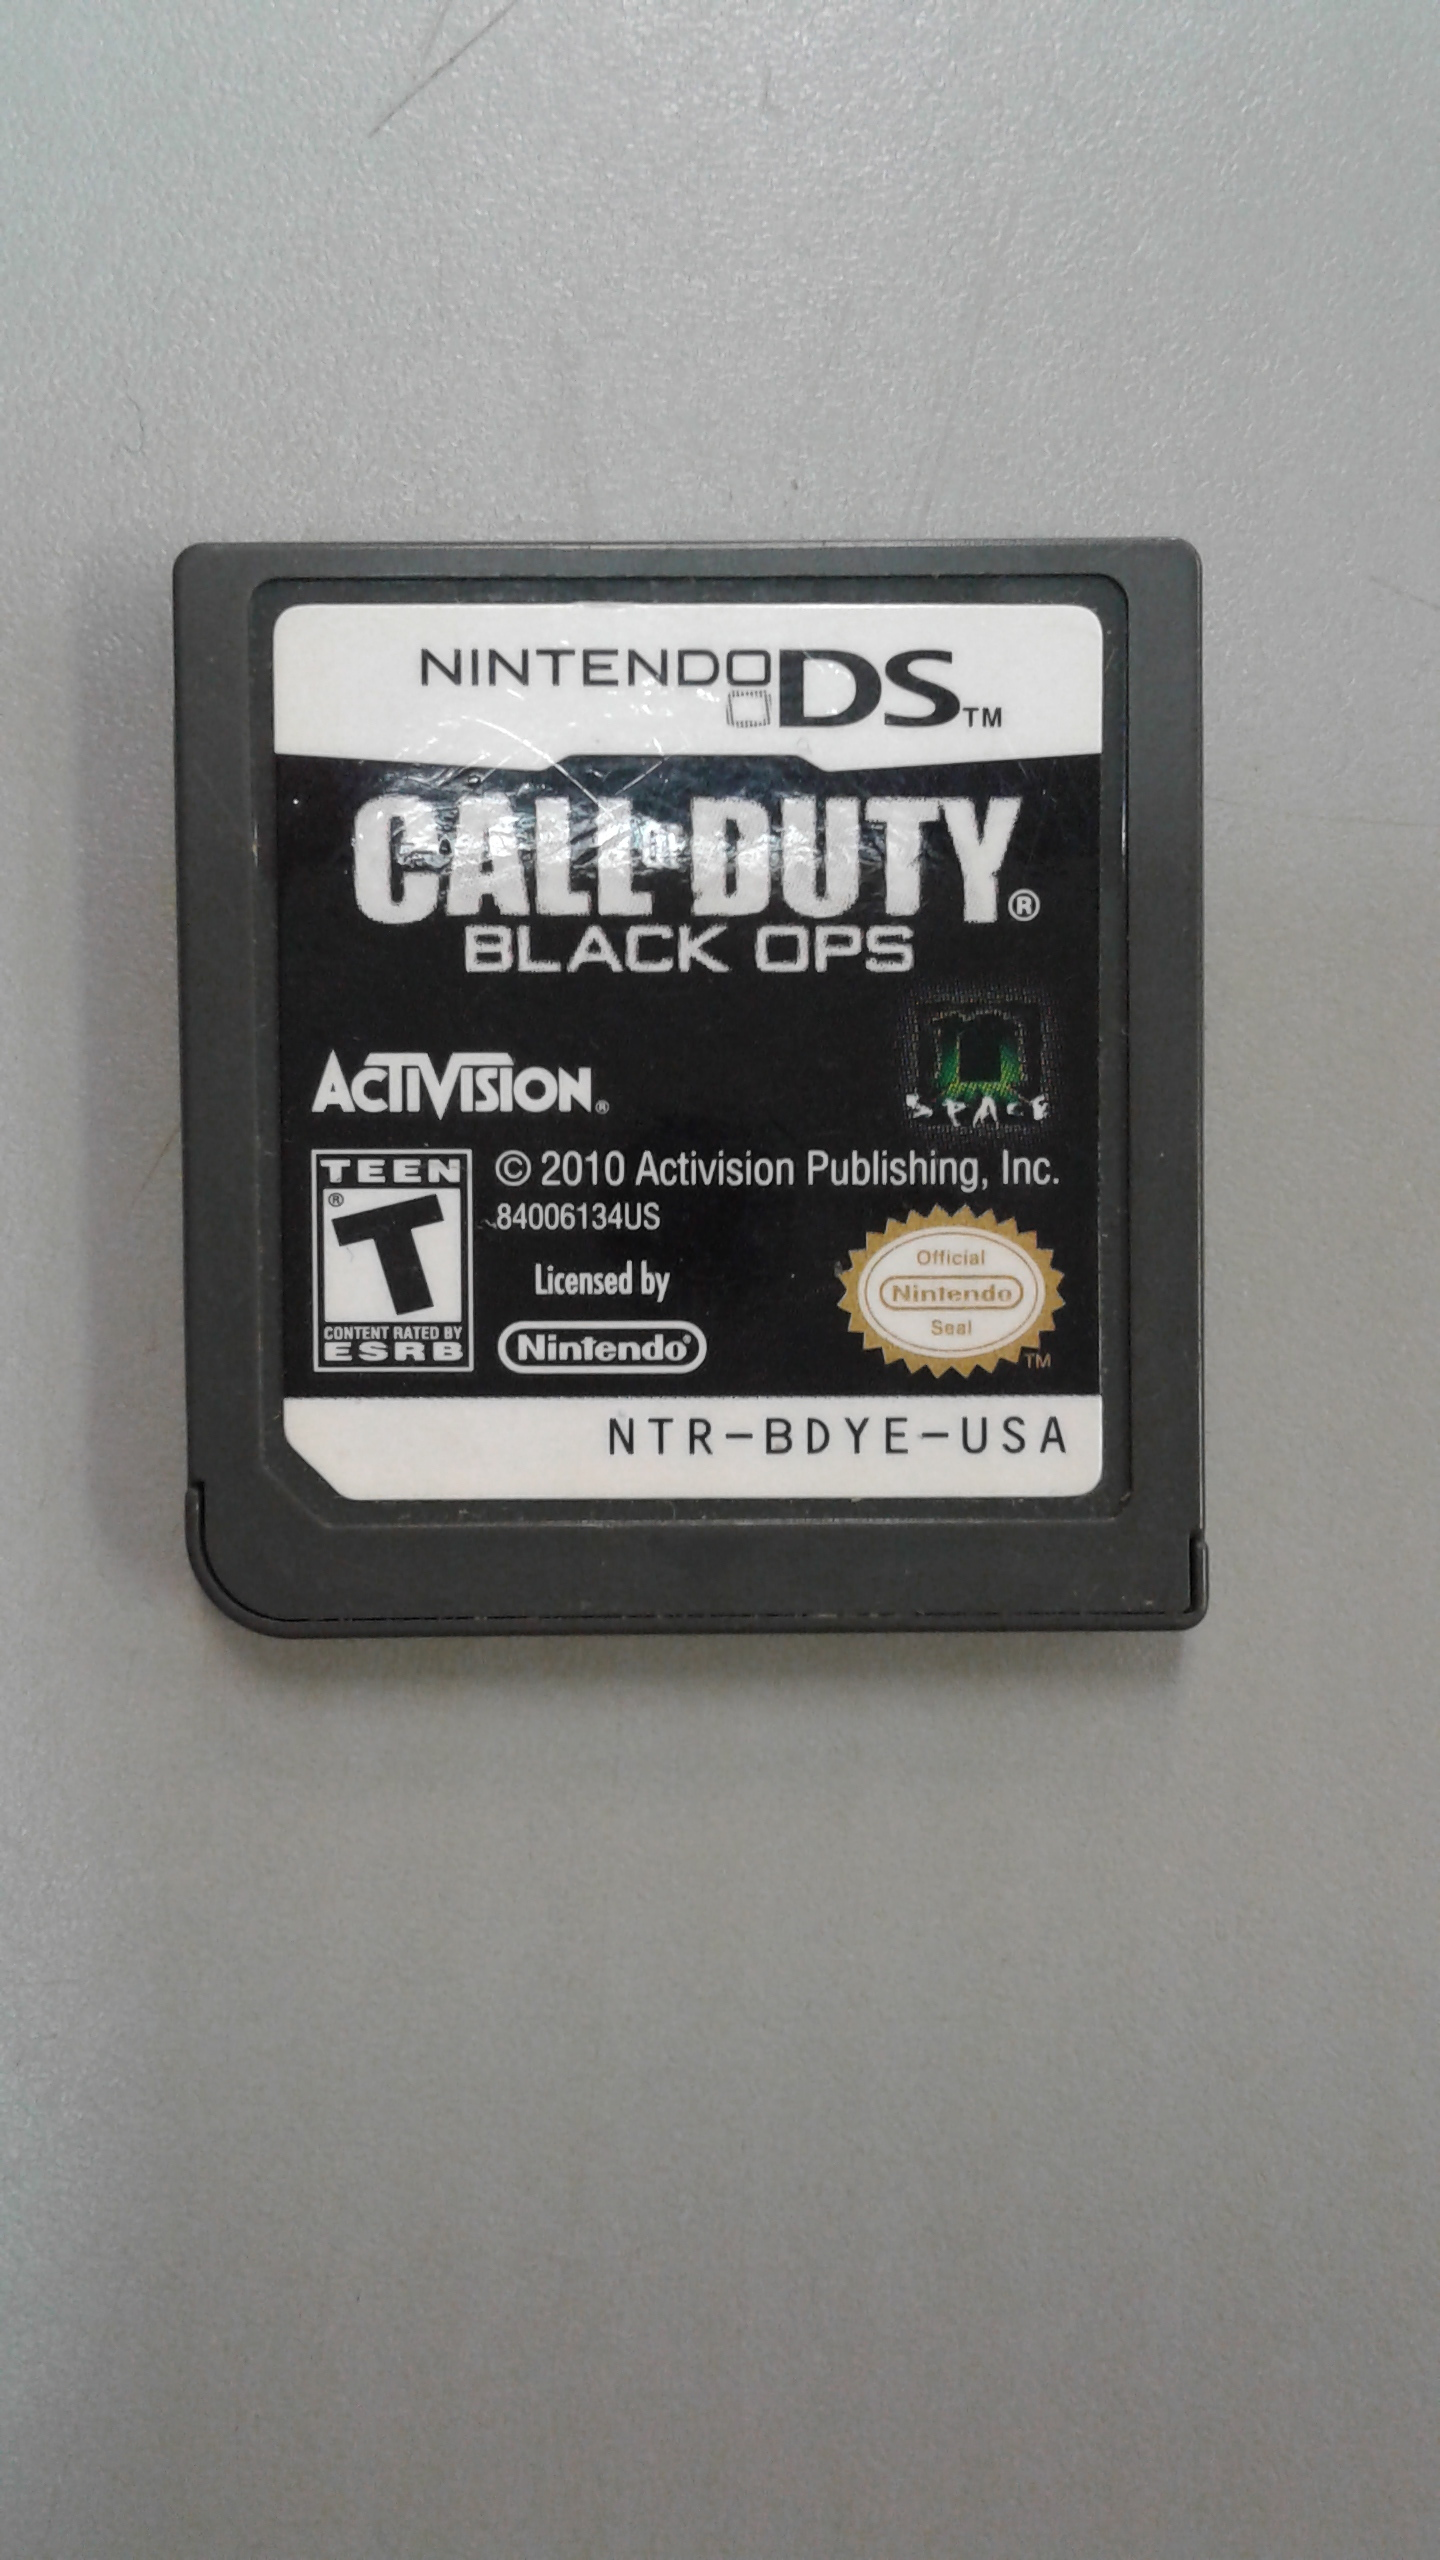 CALL OF DUTY: NINTENDO DS GAME